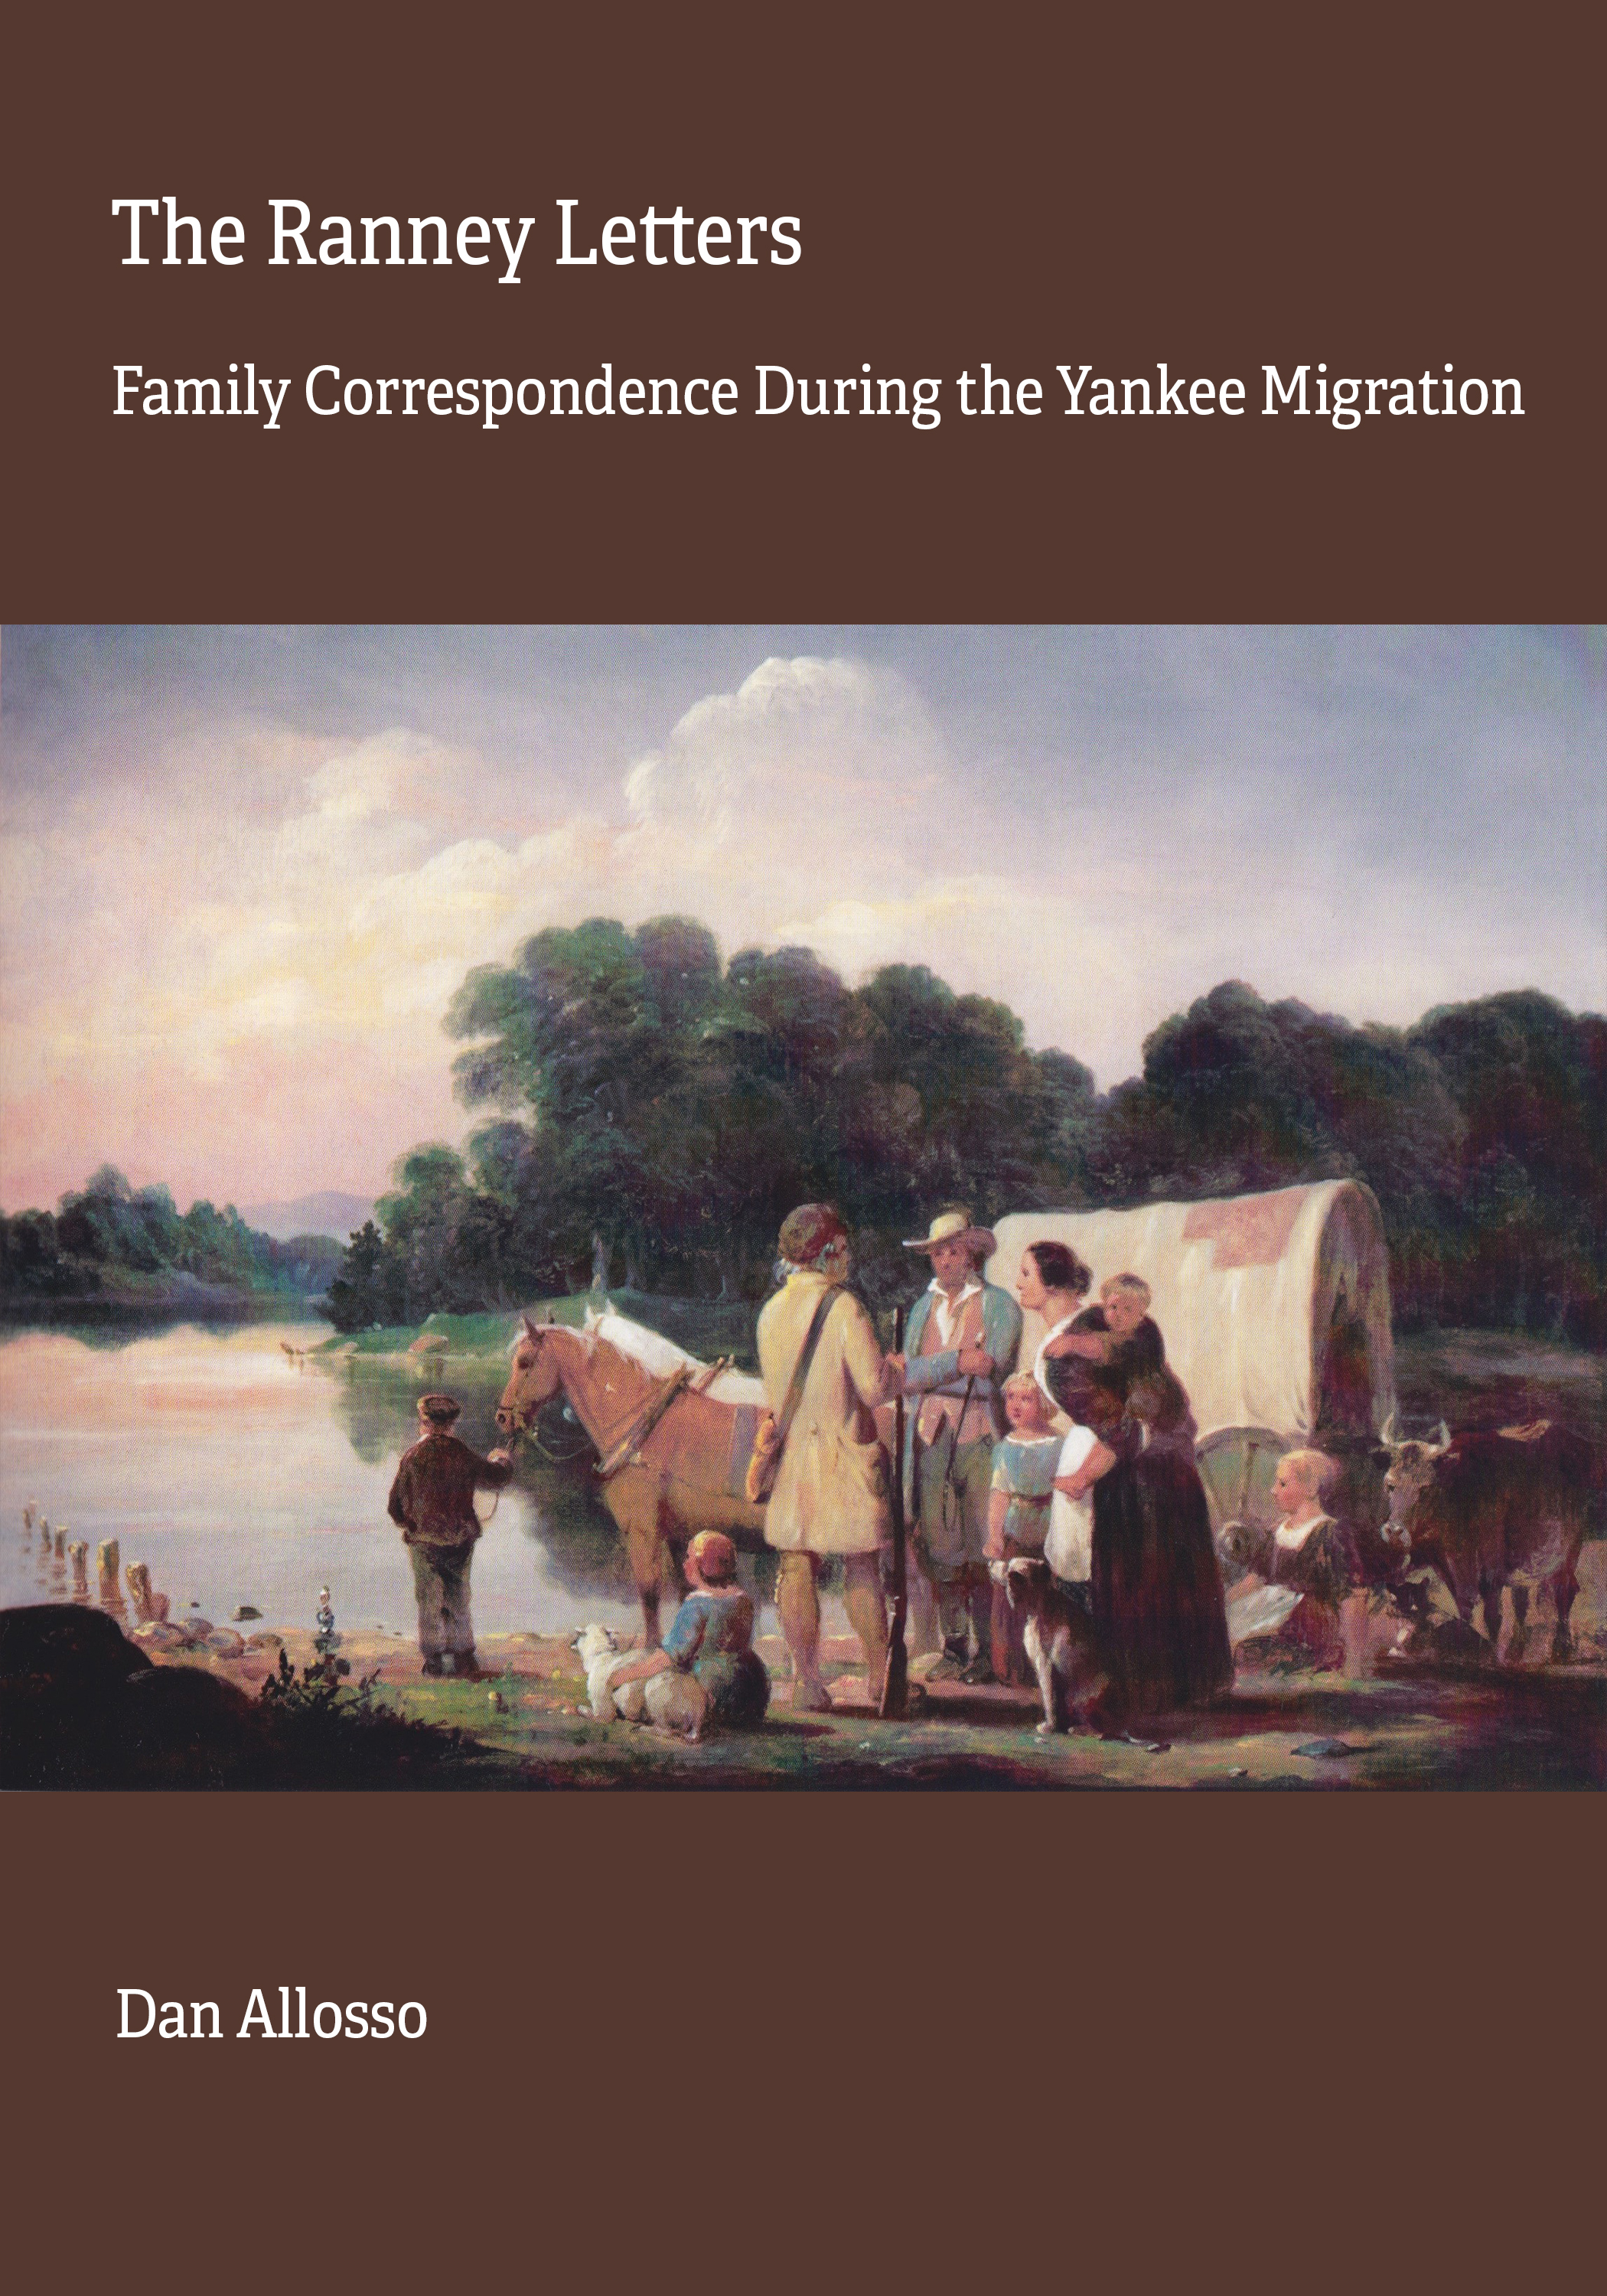 The Ranney Letters: Family Correspondence During the Yankee